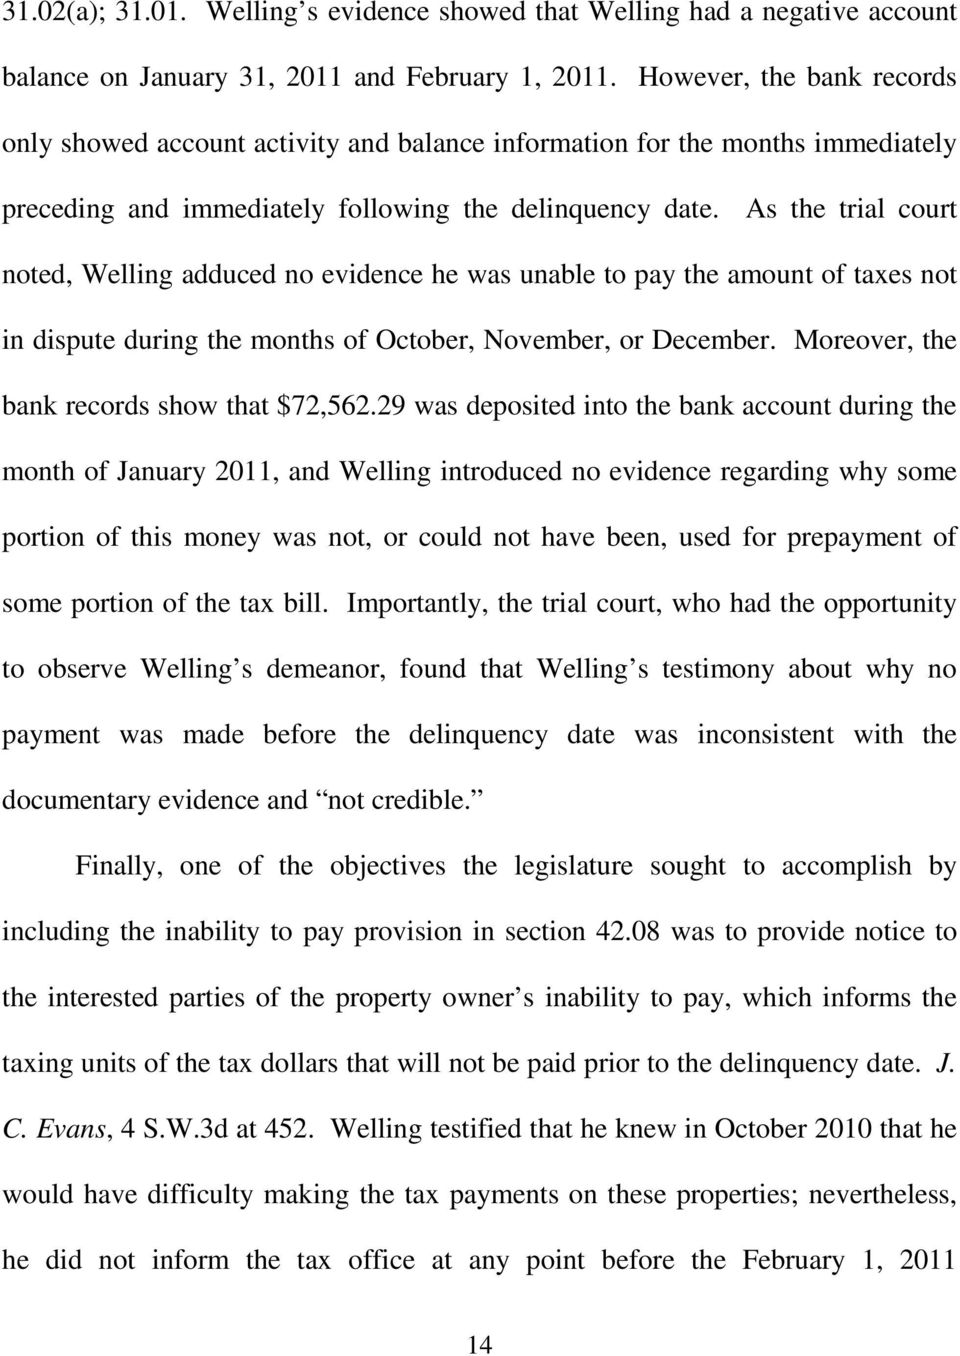 As the trial court noted, Welling adduced no evidence he was unable to pay the amount of taxes not in dispute during the months of October, November, or December.